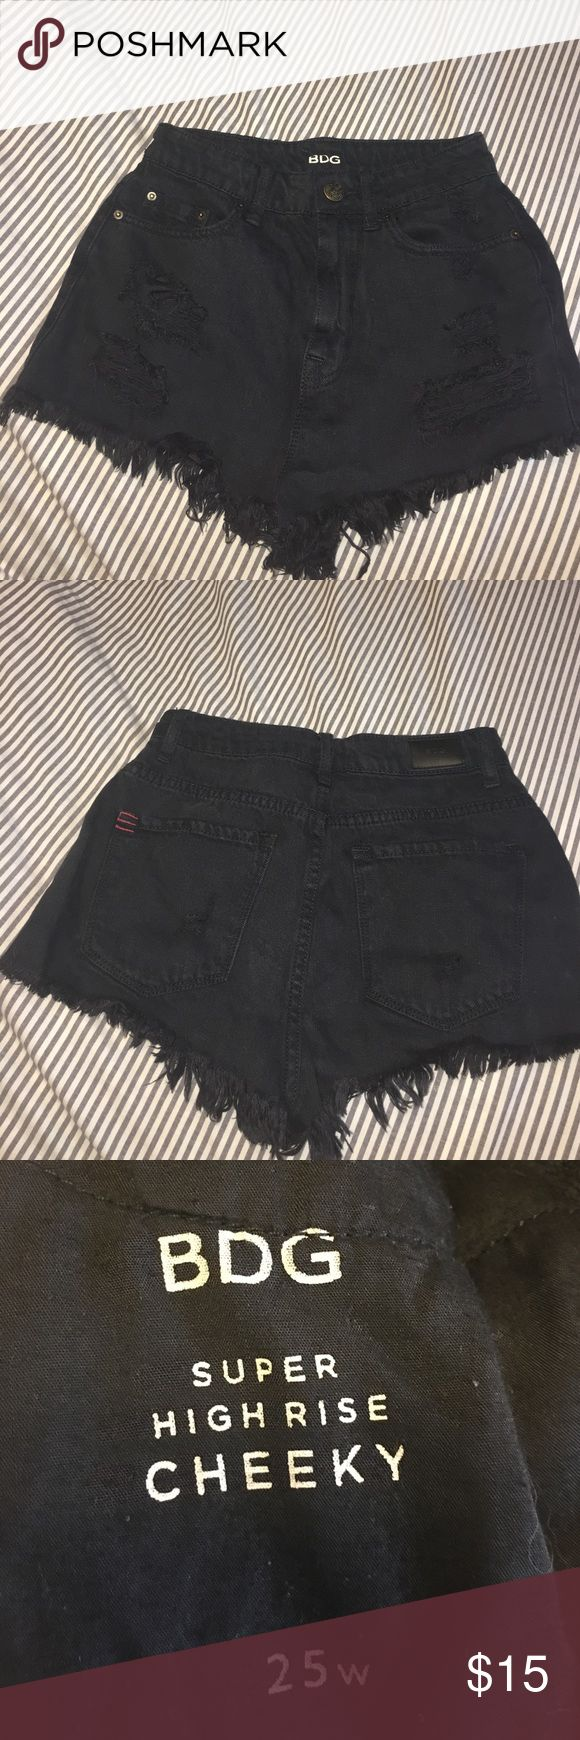 Black Festival shorts from UO Black distressed high rise cheeky shorts from Urban Outfitters (BDG). Size 25/0-2 women's. Worn less than a handful of times, perfect condition! Urban Outfitters Shorts Jean Shorts